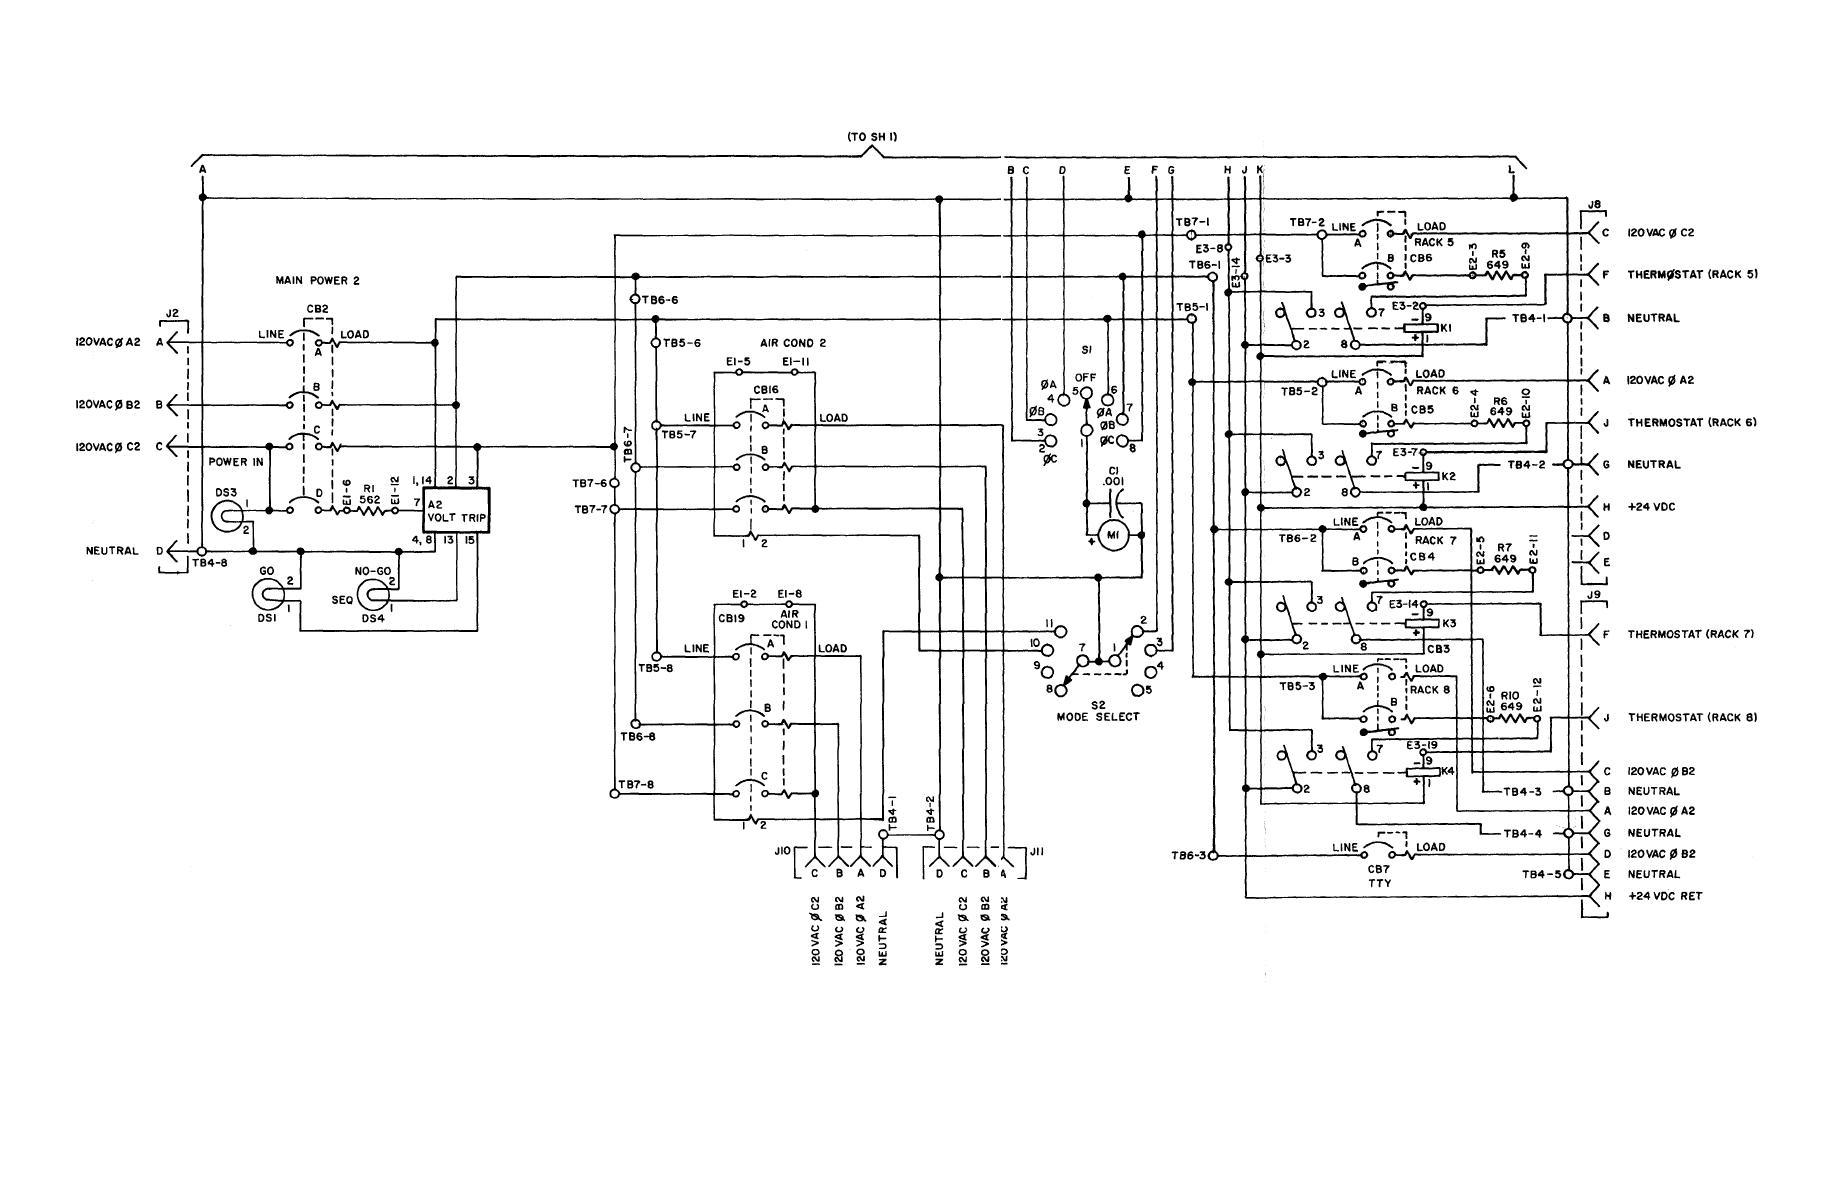 hight resolution of distribution board wiring diagram wiring diagram databasefigure fo 6 power distribution panel schematic wiring